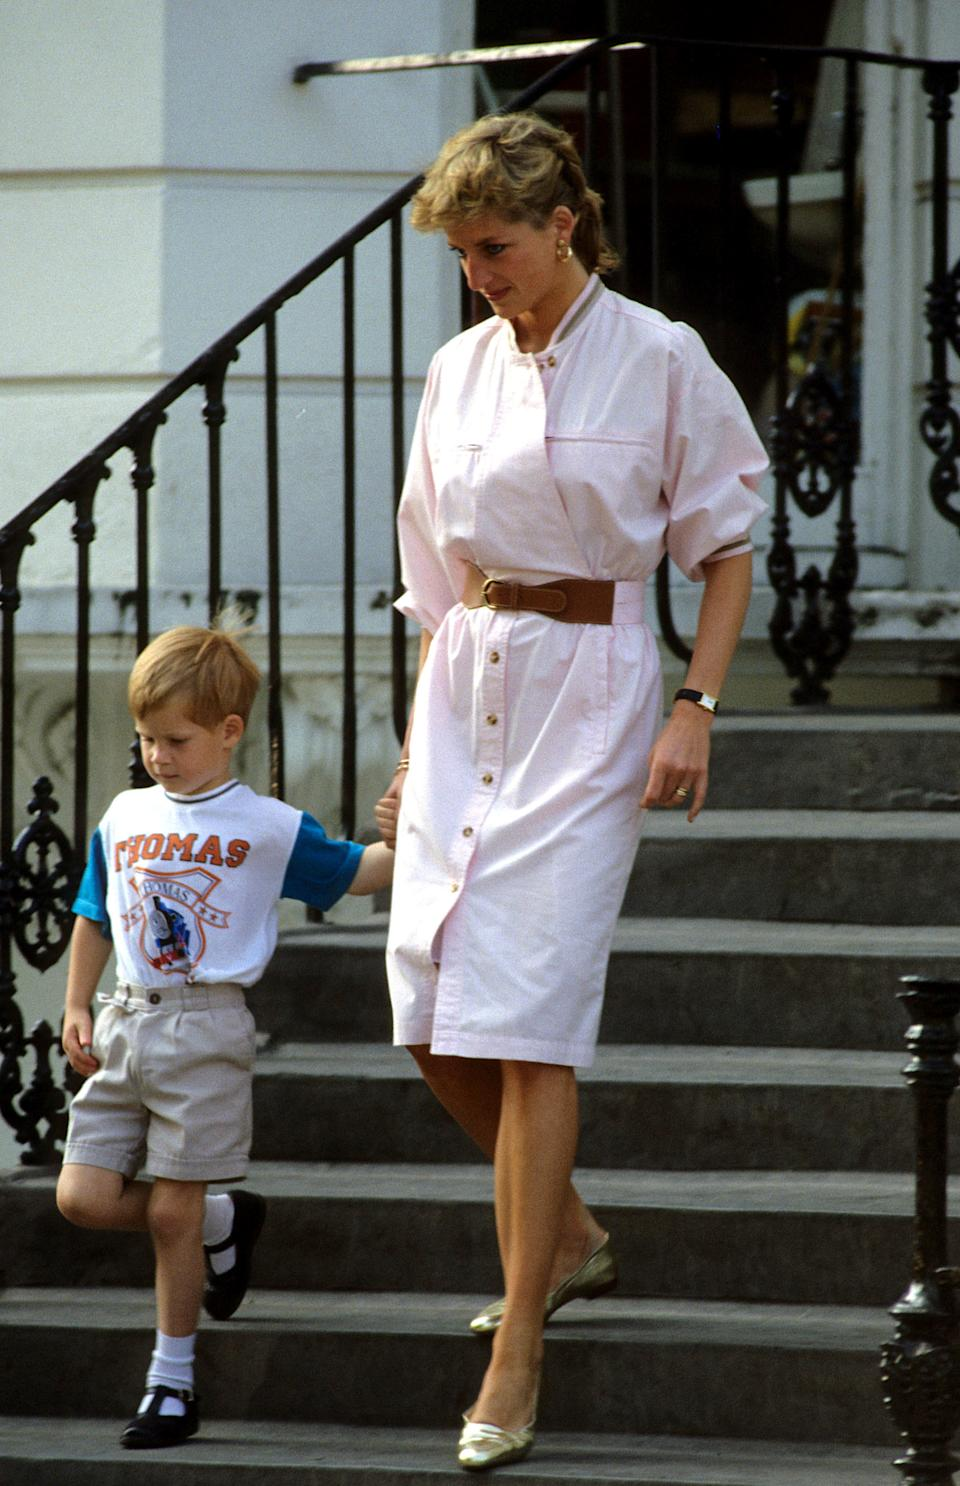 Prince Harry wears a Thomas the Tank Engine t-shirt when he leaves nursery school with his mother Diana, Princess of Wales in June 1989 in London.